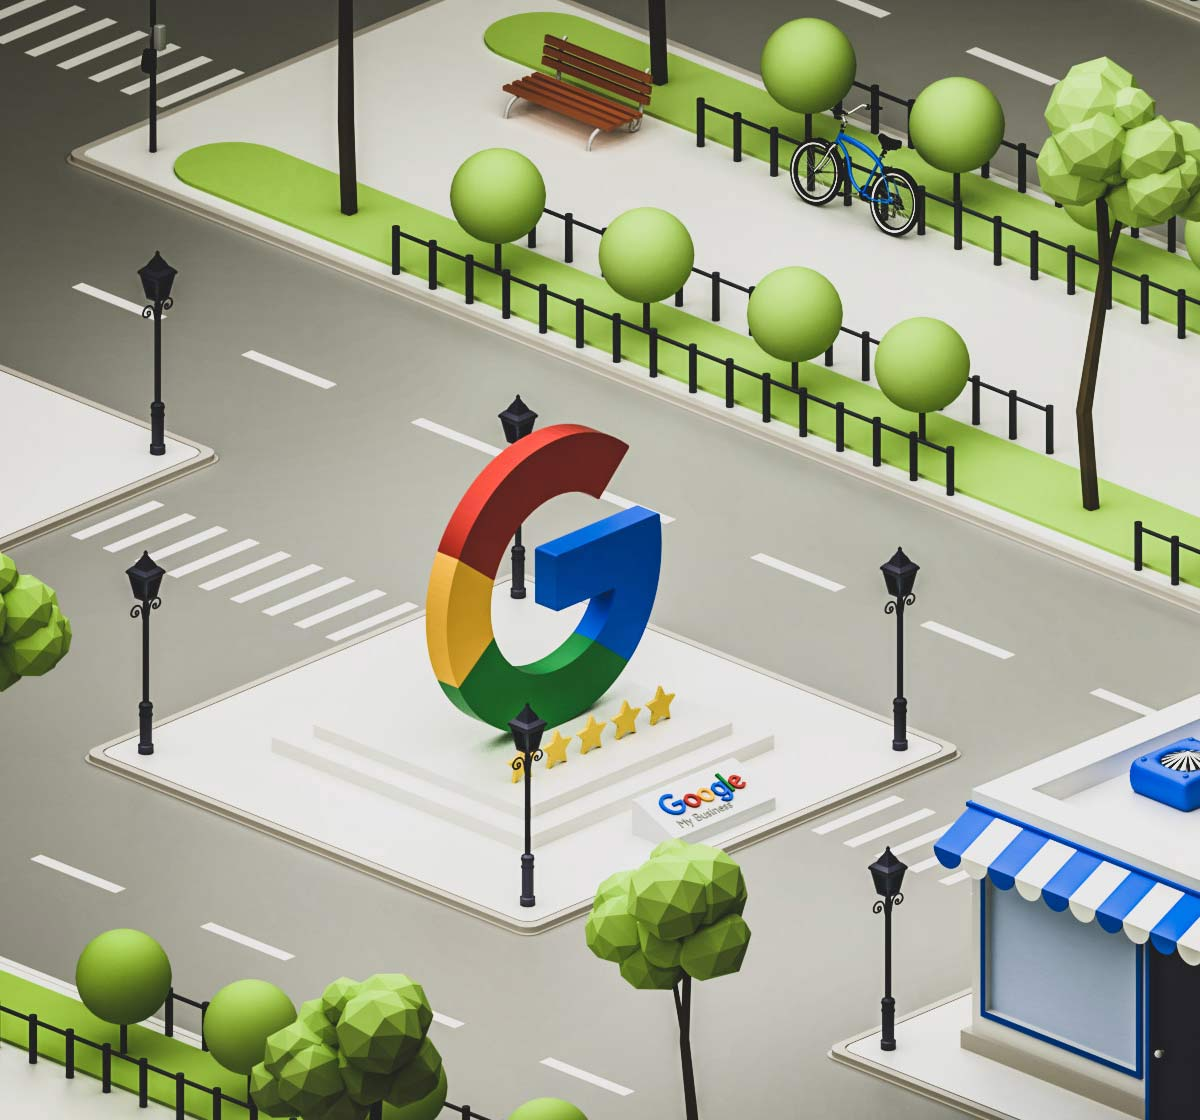 Illustration showing Google My Business service